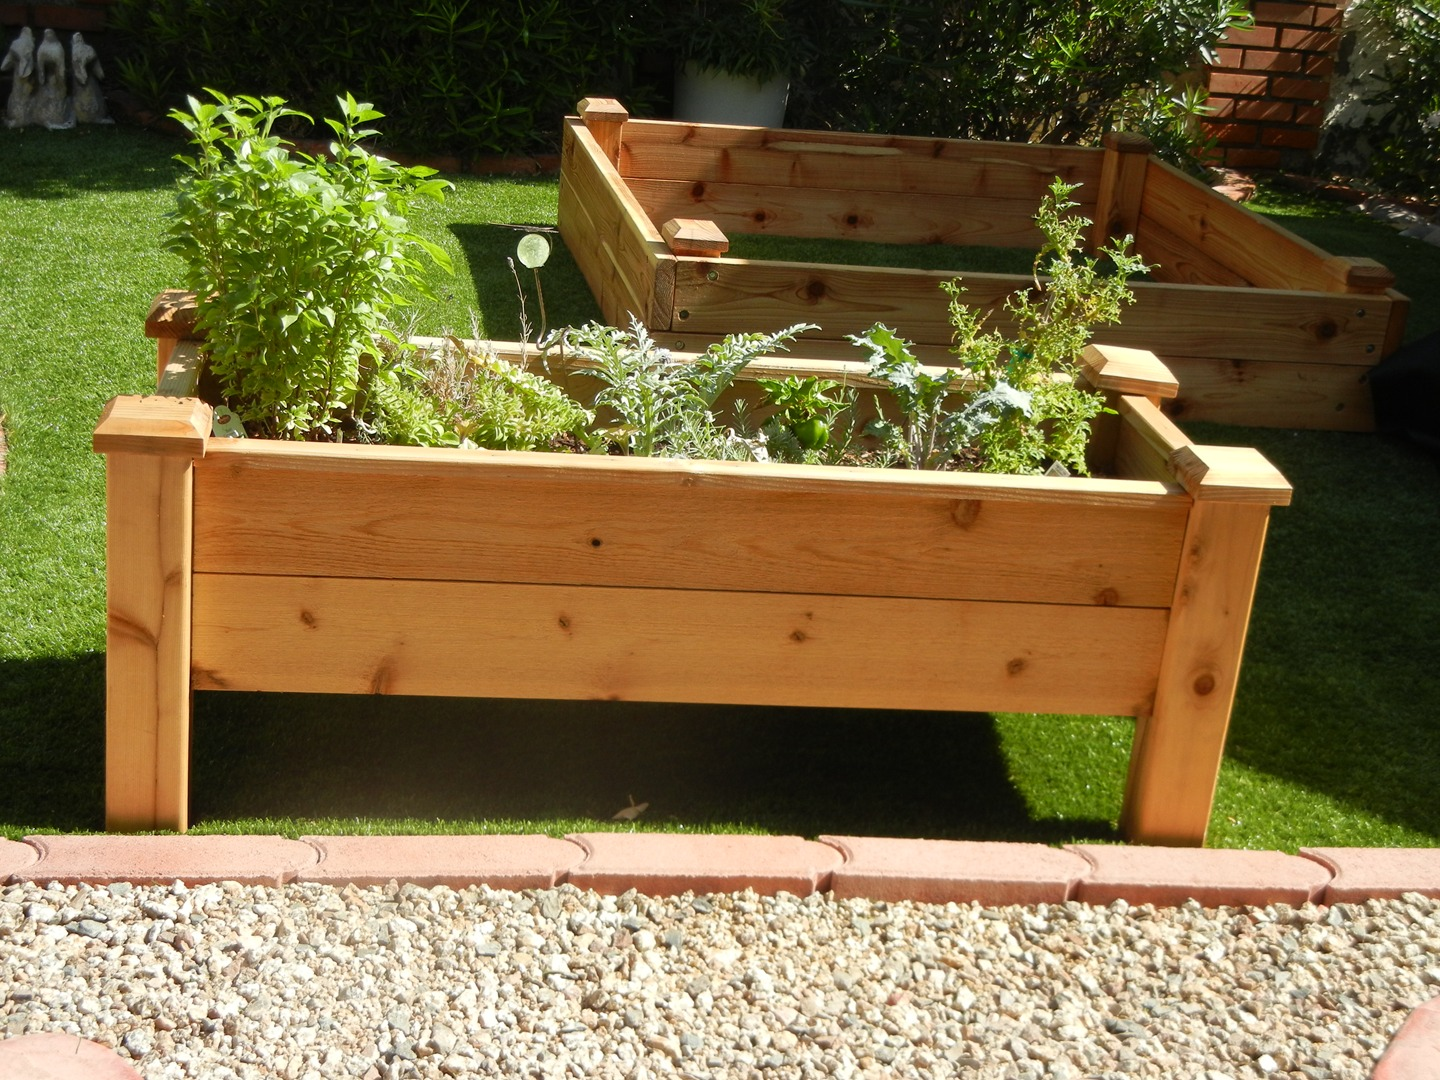 17 best ideas about above ground garden on - raised garden beds ...